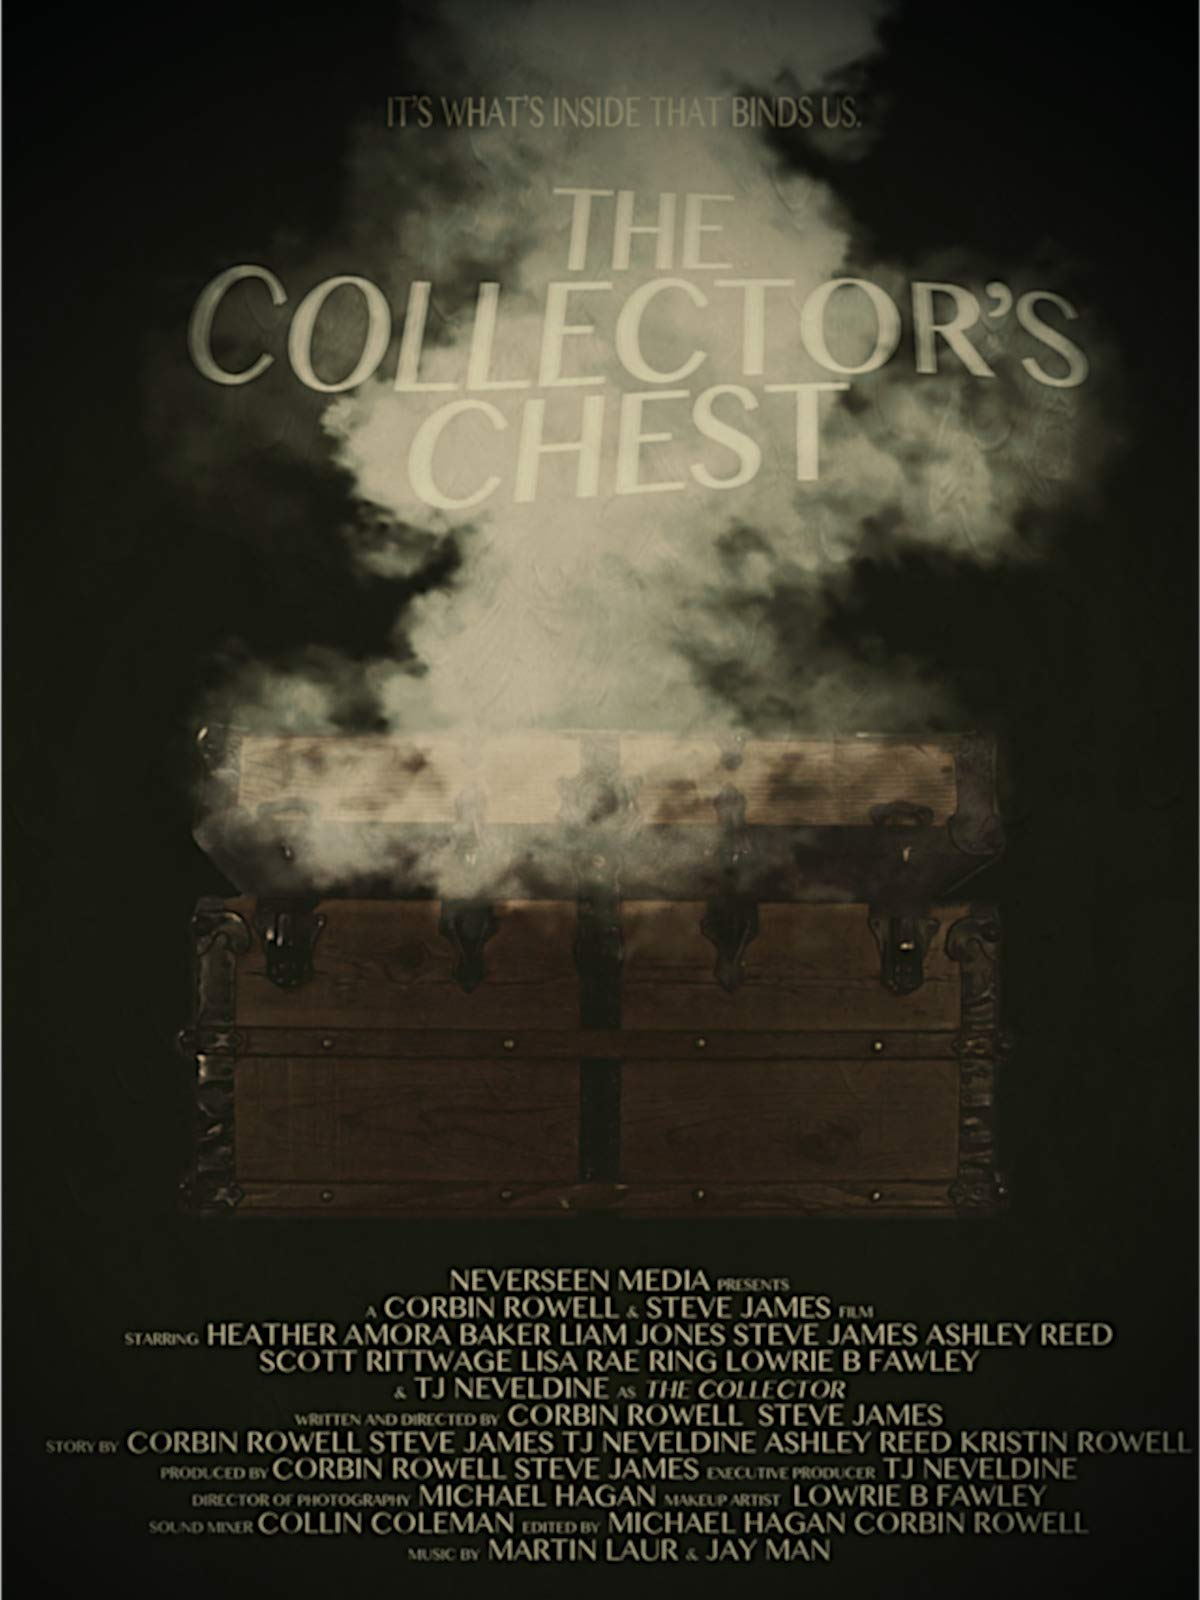 The Collector's Chest